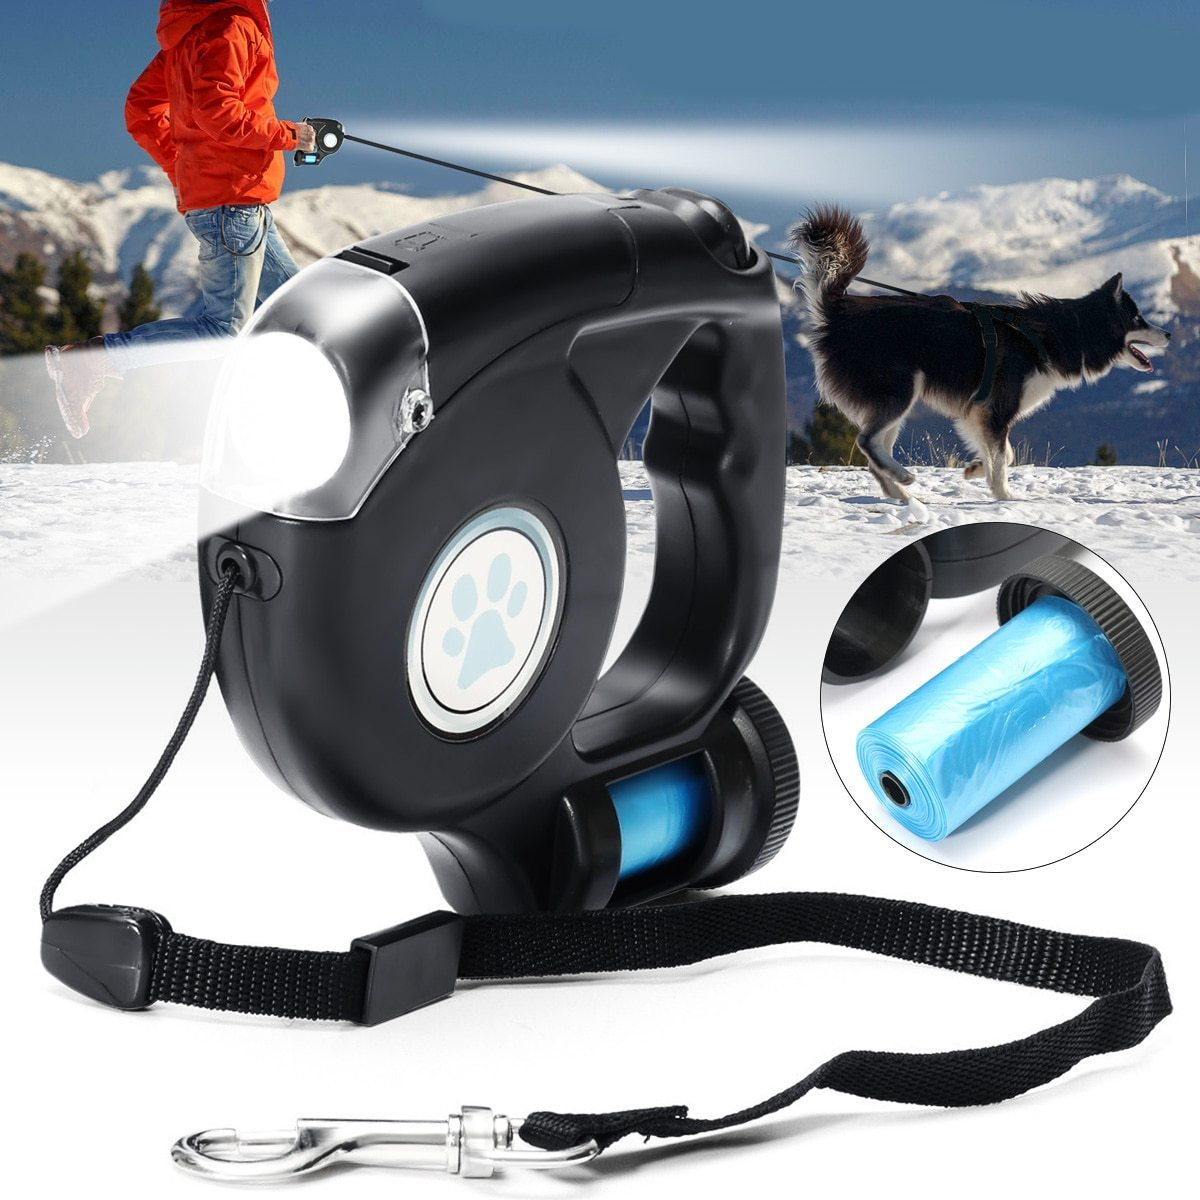 3-in-1 Dog Retractable Leash with Built-in Flashlight